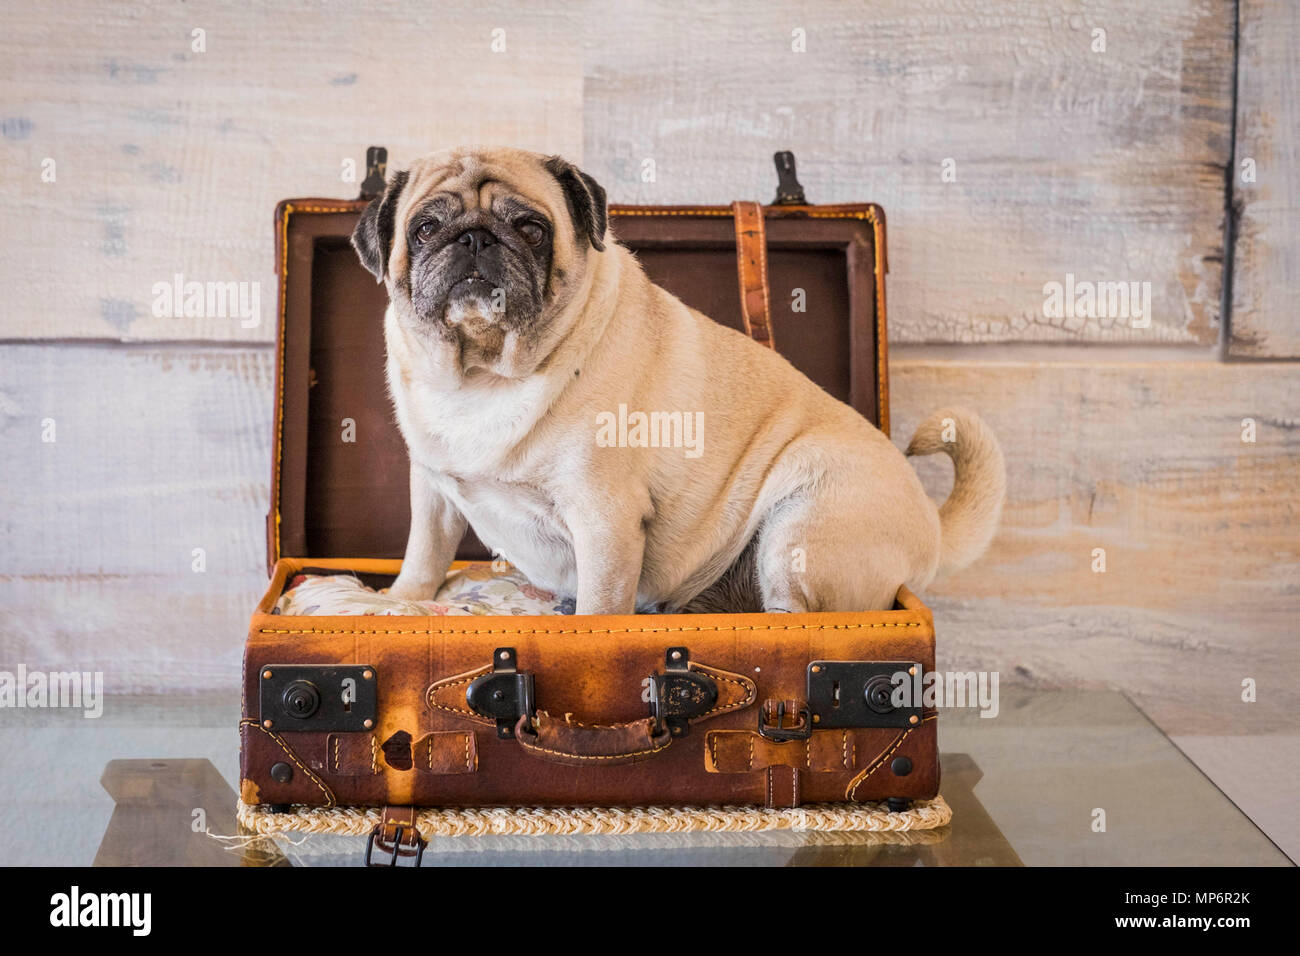 nice pug dog inside a trolley case ready to travel and discover the world. wonderlust concept. - Stock Image